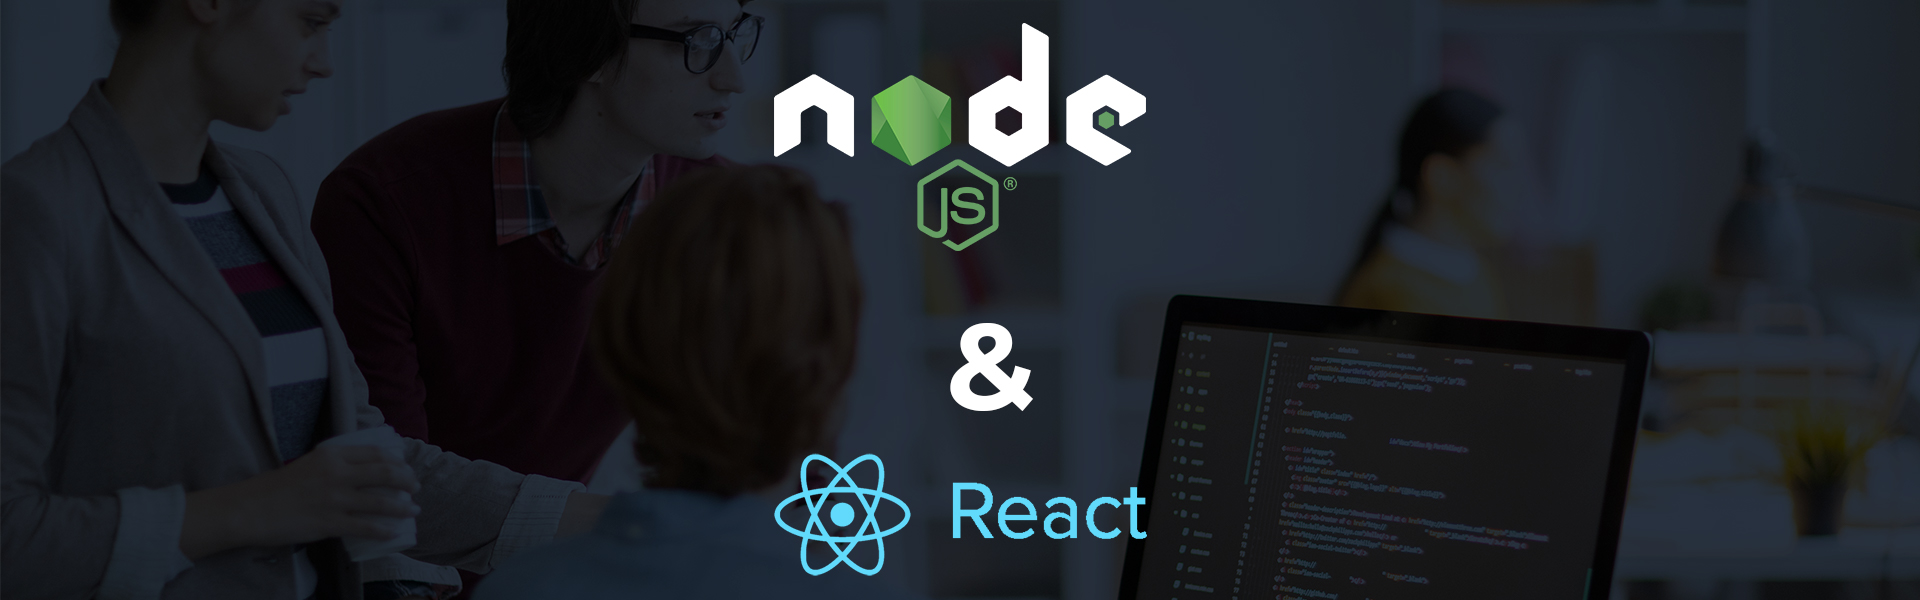 5-Top-Reasons-Why-You-Should-Use-Nodejs-with-React-for-Web-Development_main-banner_1